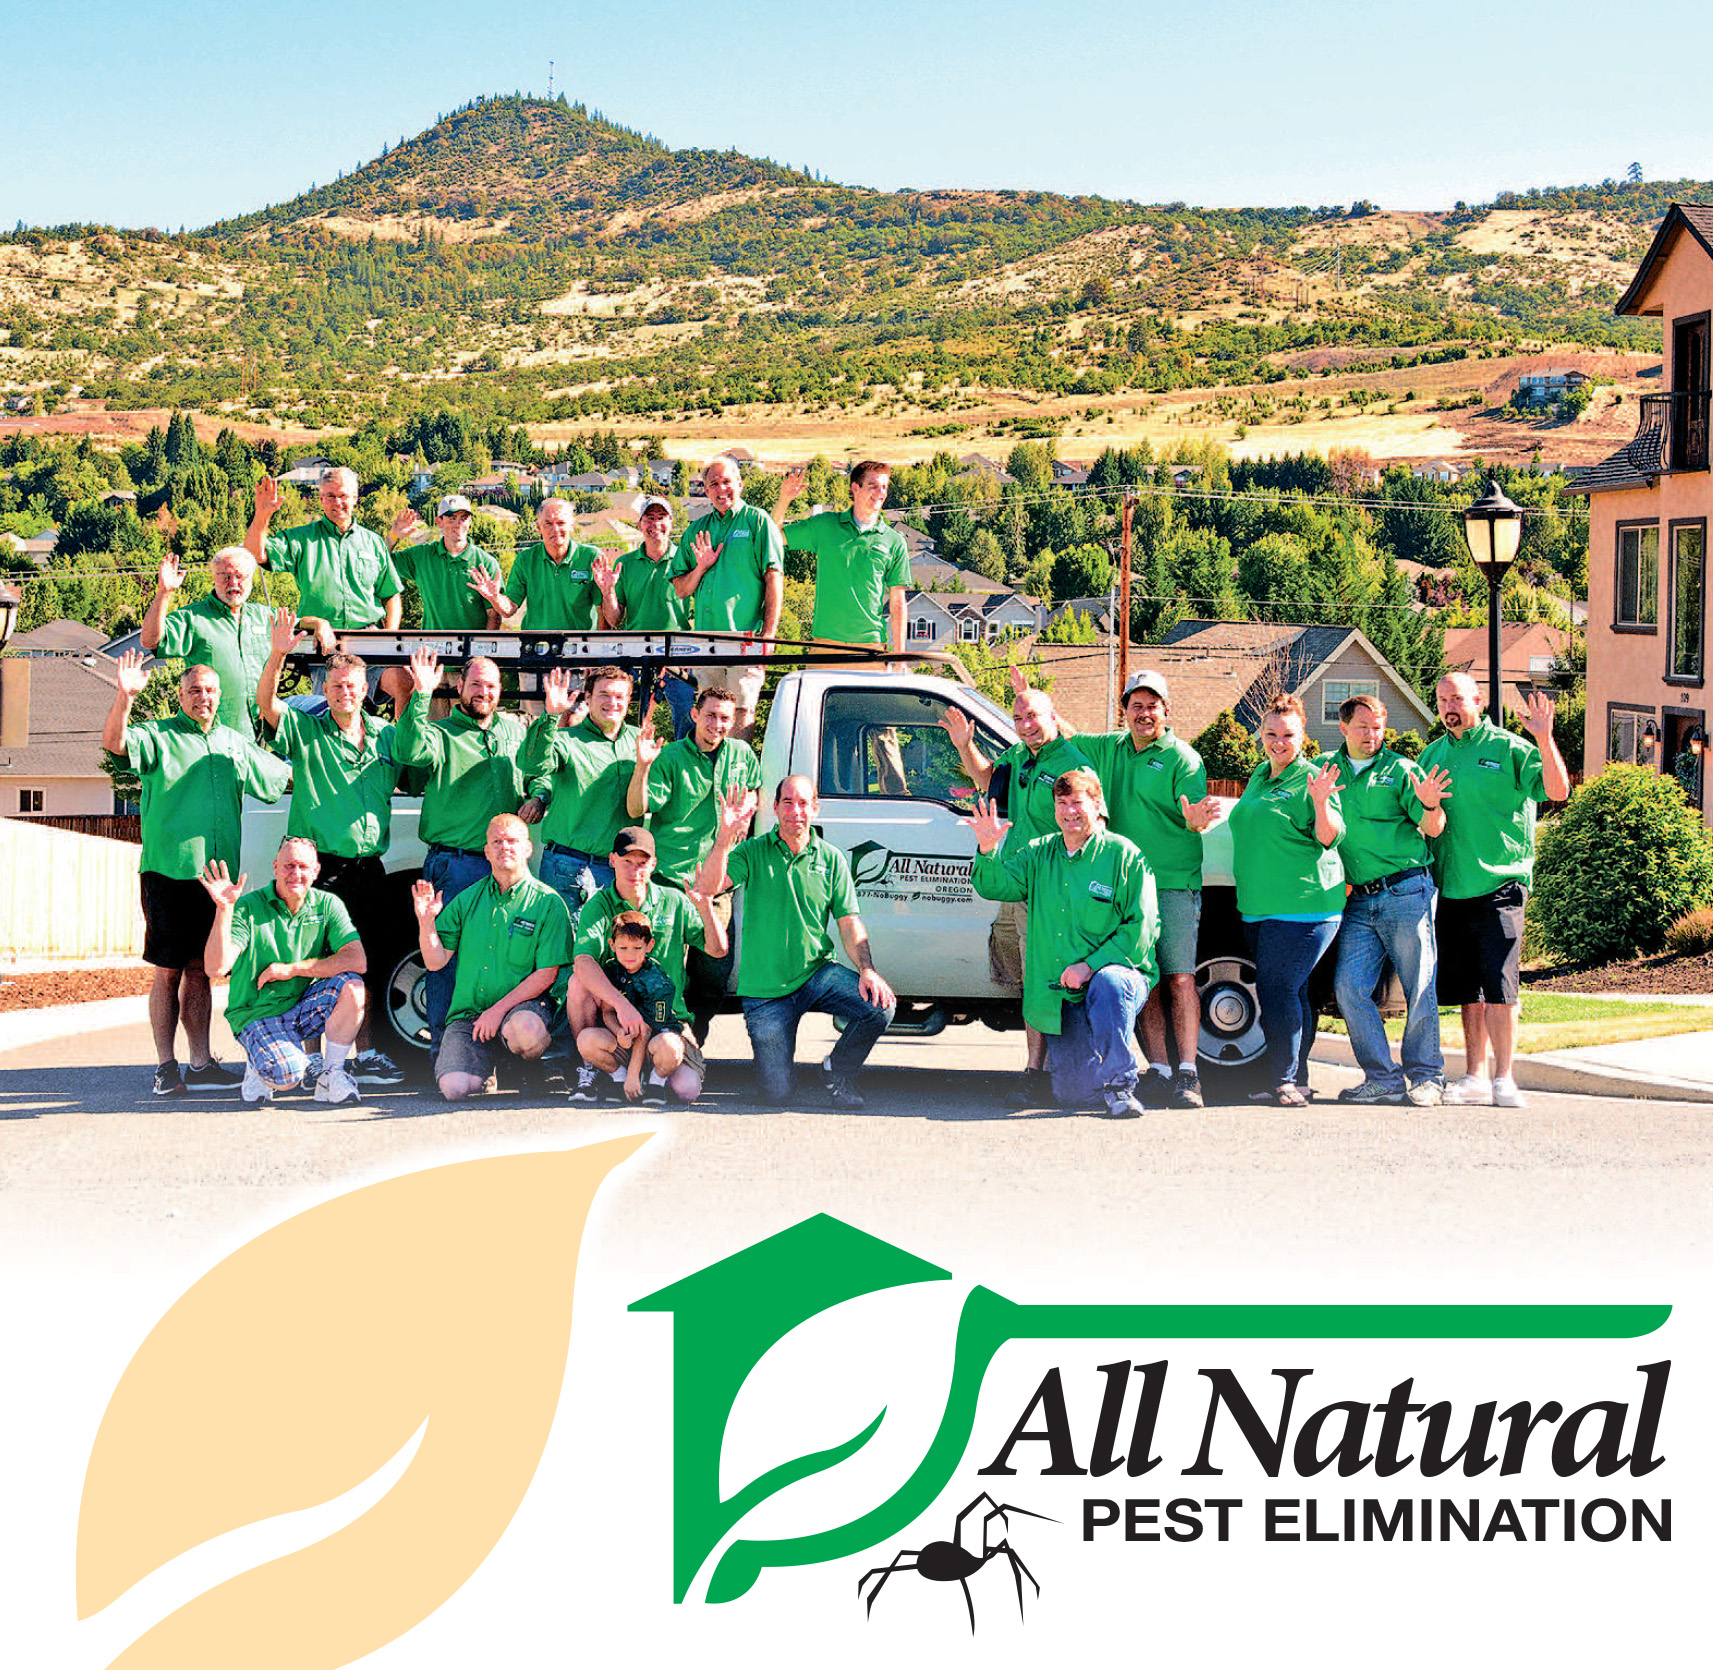 Meet The Pest Elimination Team